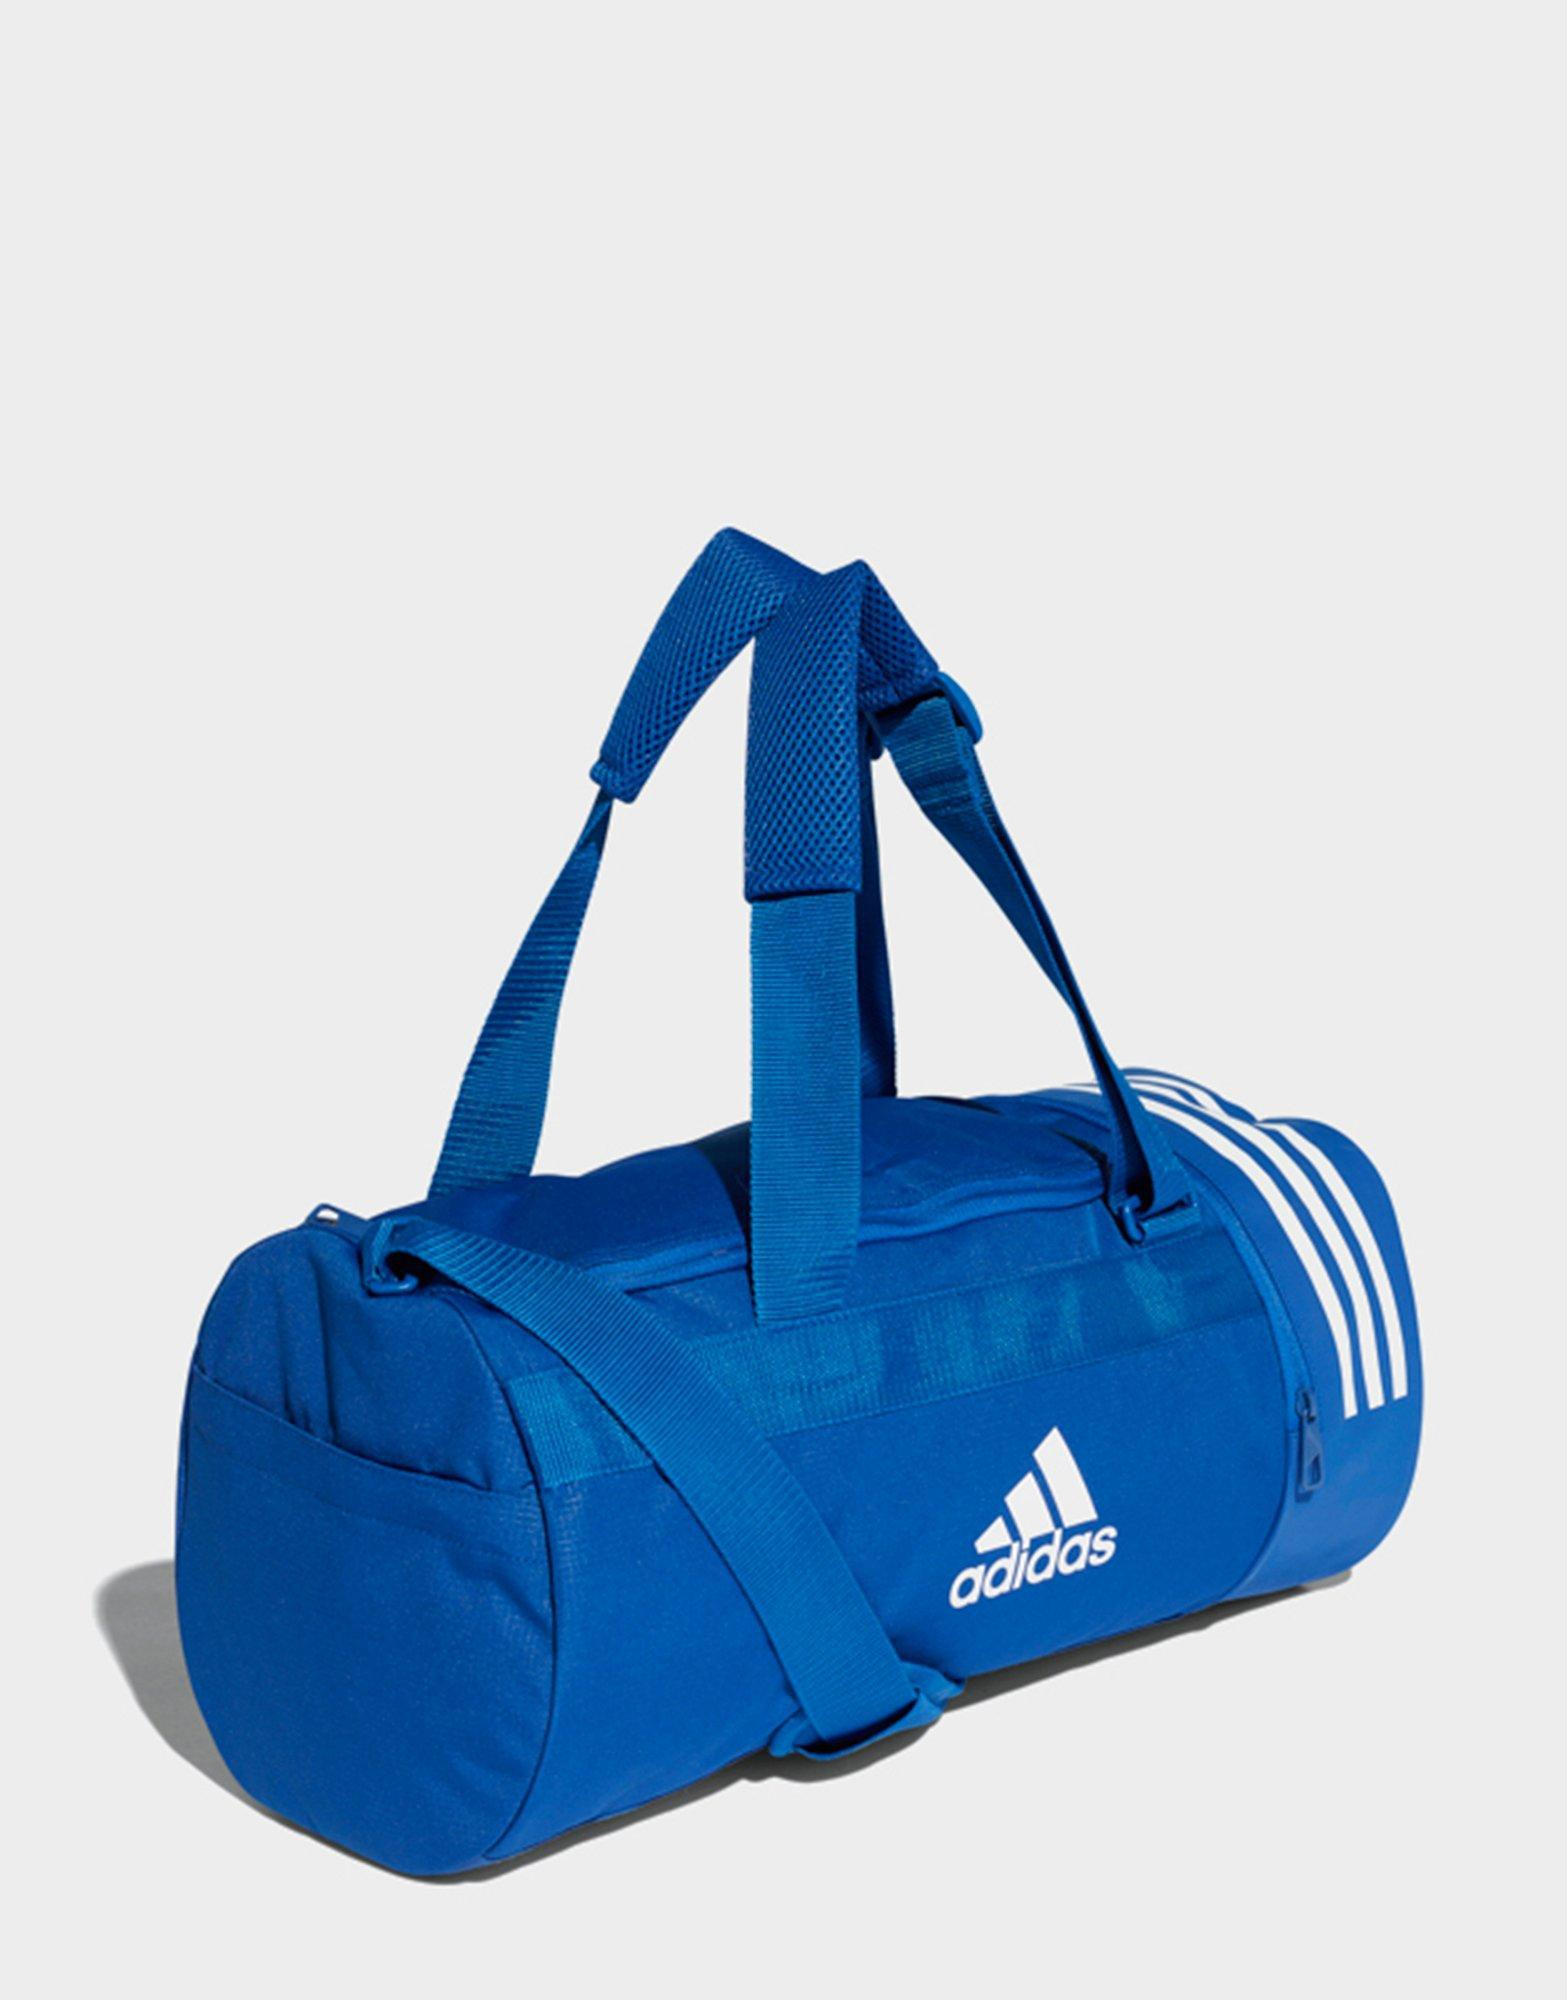 98d5314ea7aa adidas Convertible 3-stripes Duffel Bag Small in Blue for Men - Lyst